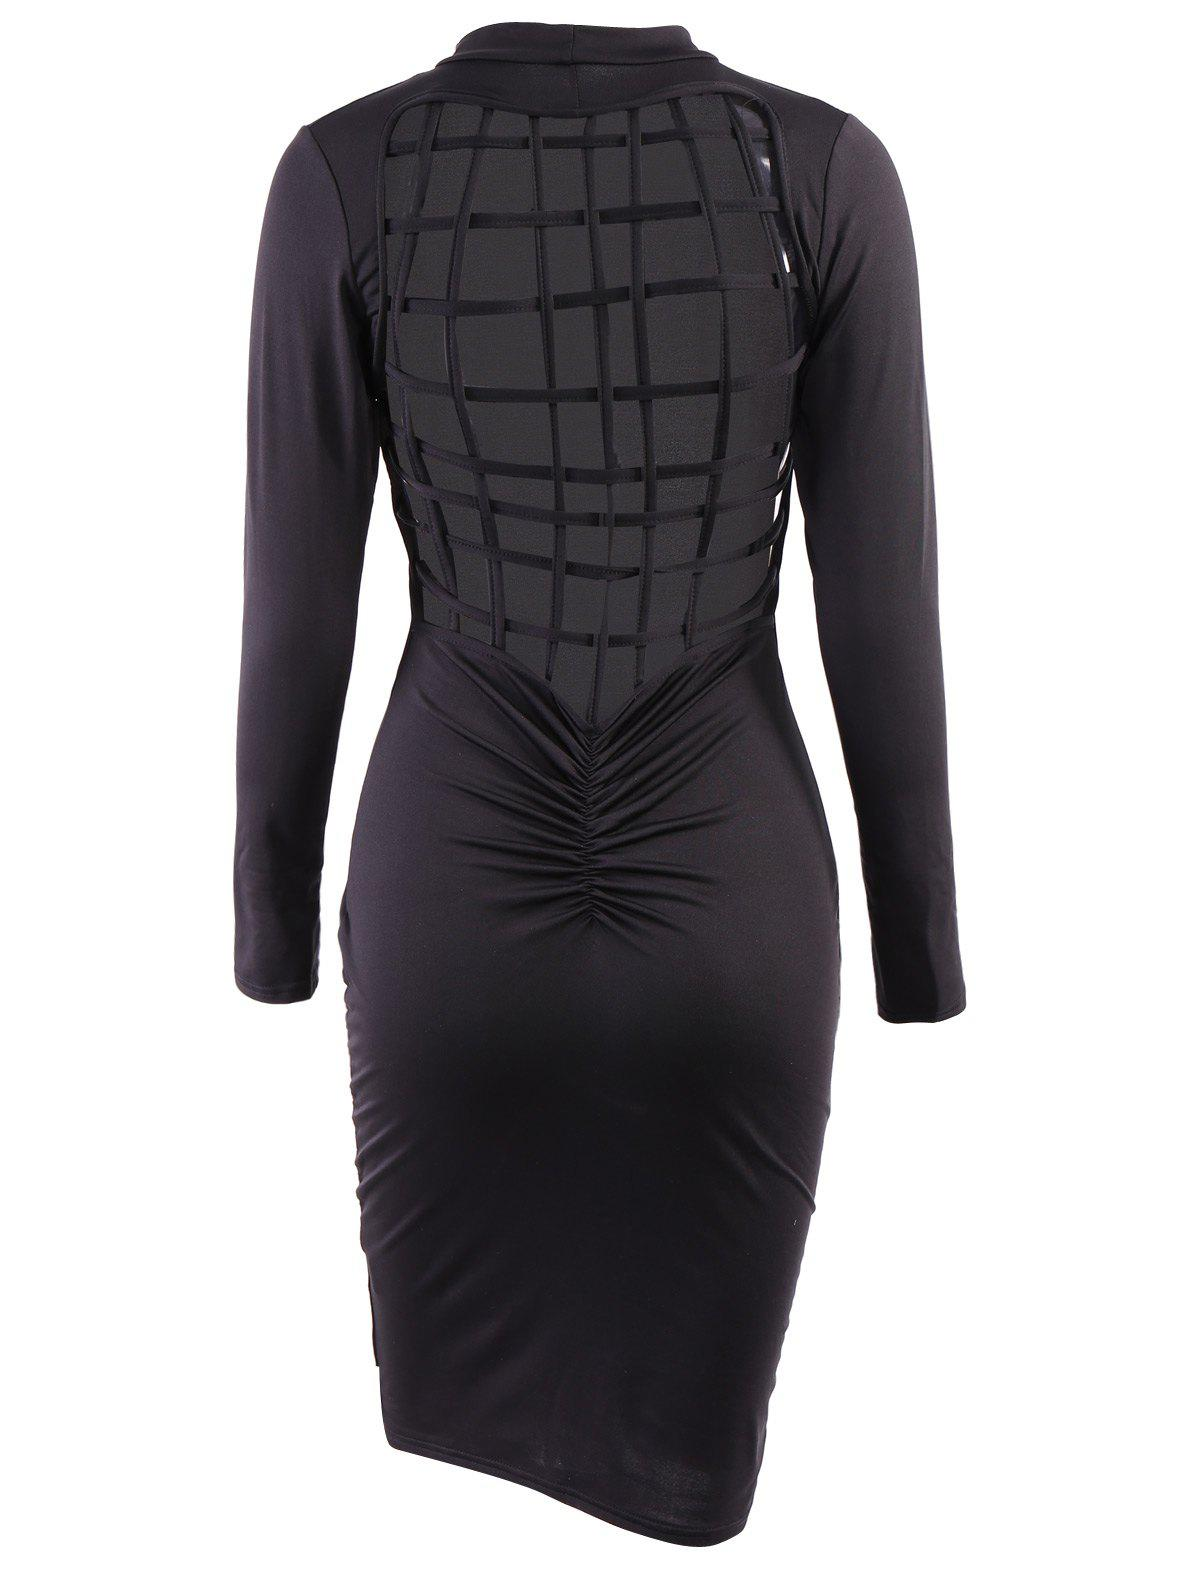 Shop Sexy Solid Color Back Hollow Out Long Sleeve Bodycon Dress For Women